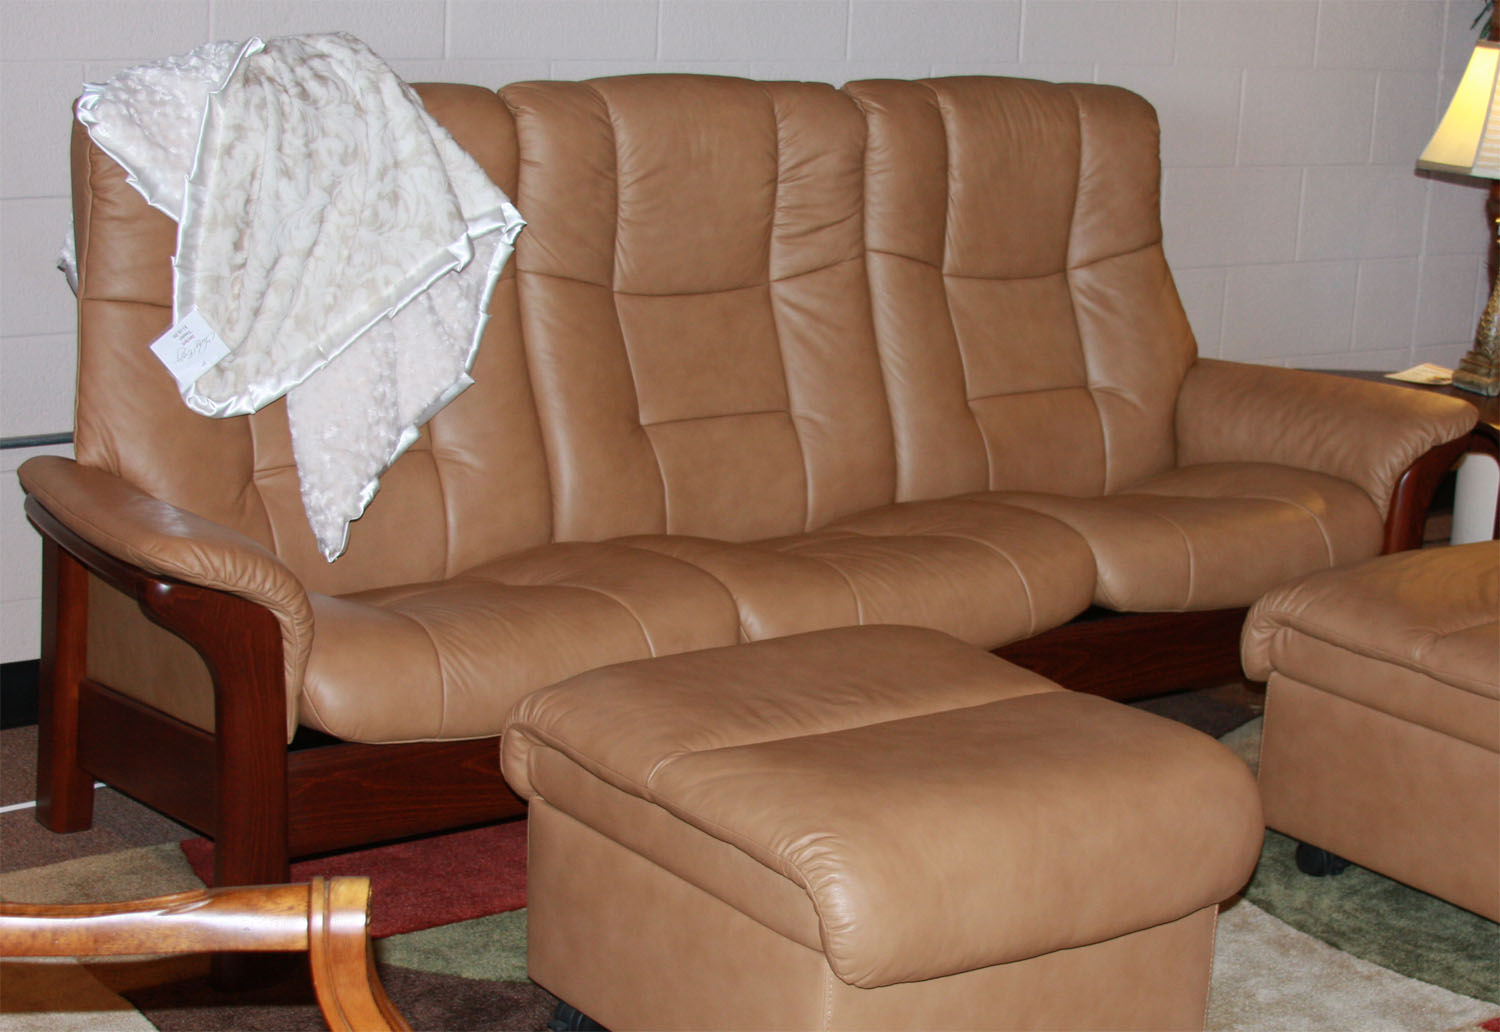 Captivating Stressless Buckingham 3 Seat High Back Sofa Paloma Taupe Color Leather  Recliner Sofa